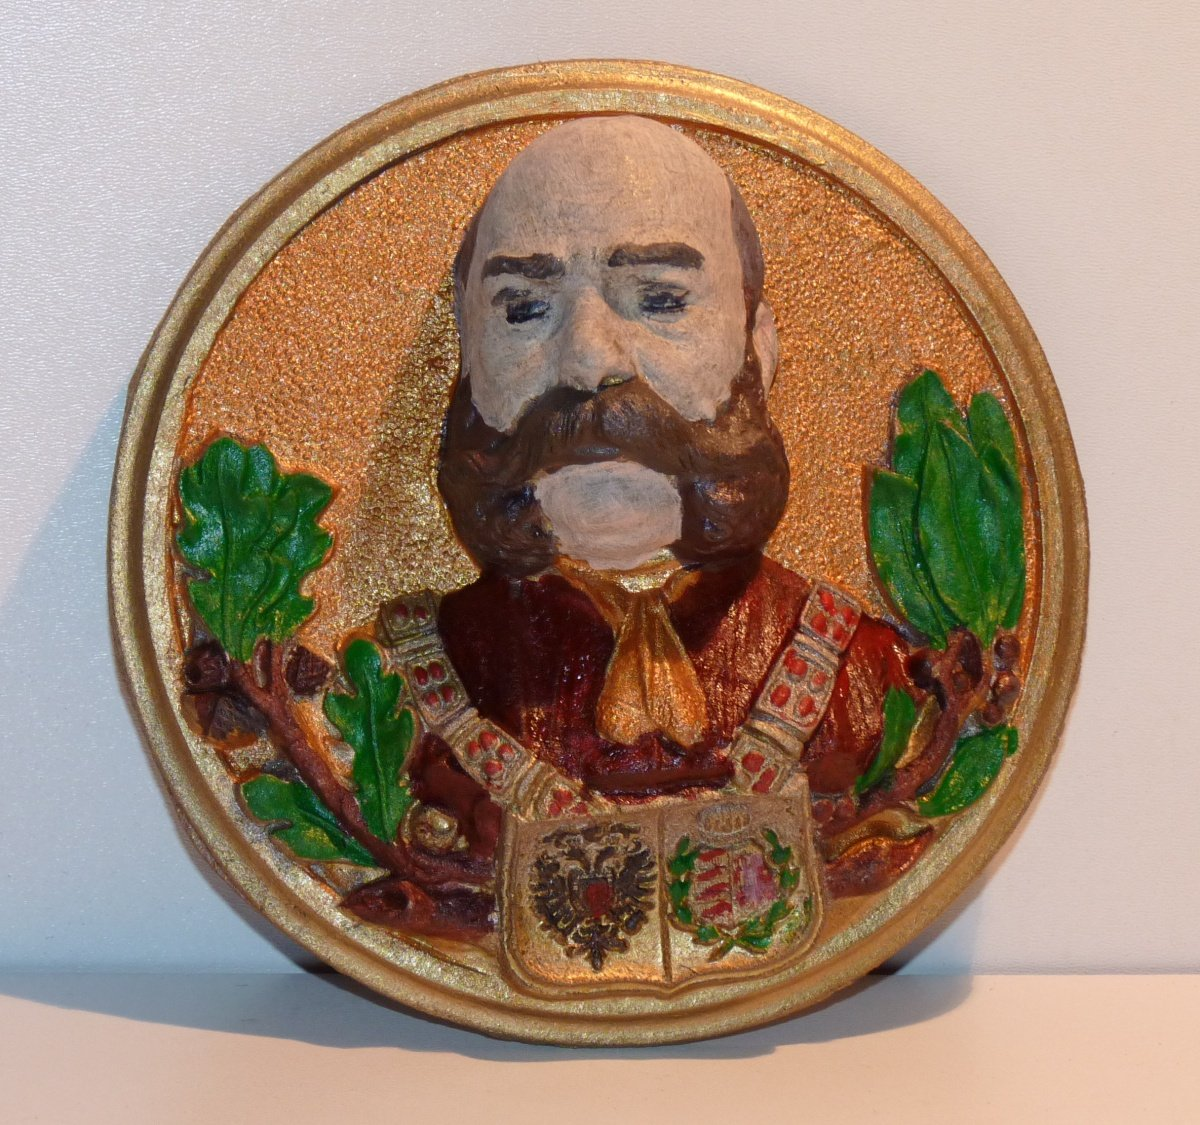 Modern plaque with portrait of Franz Joseph